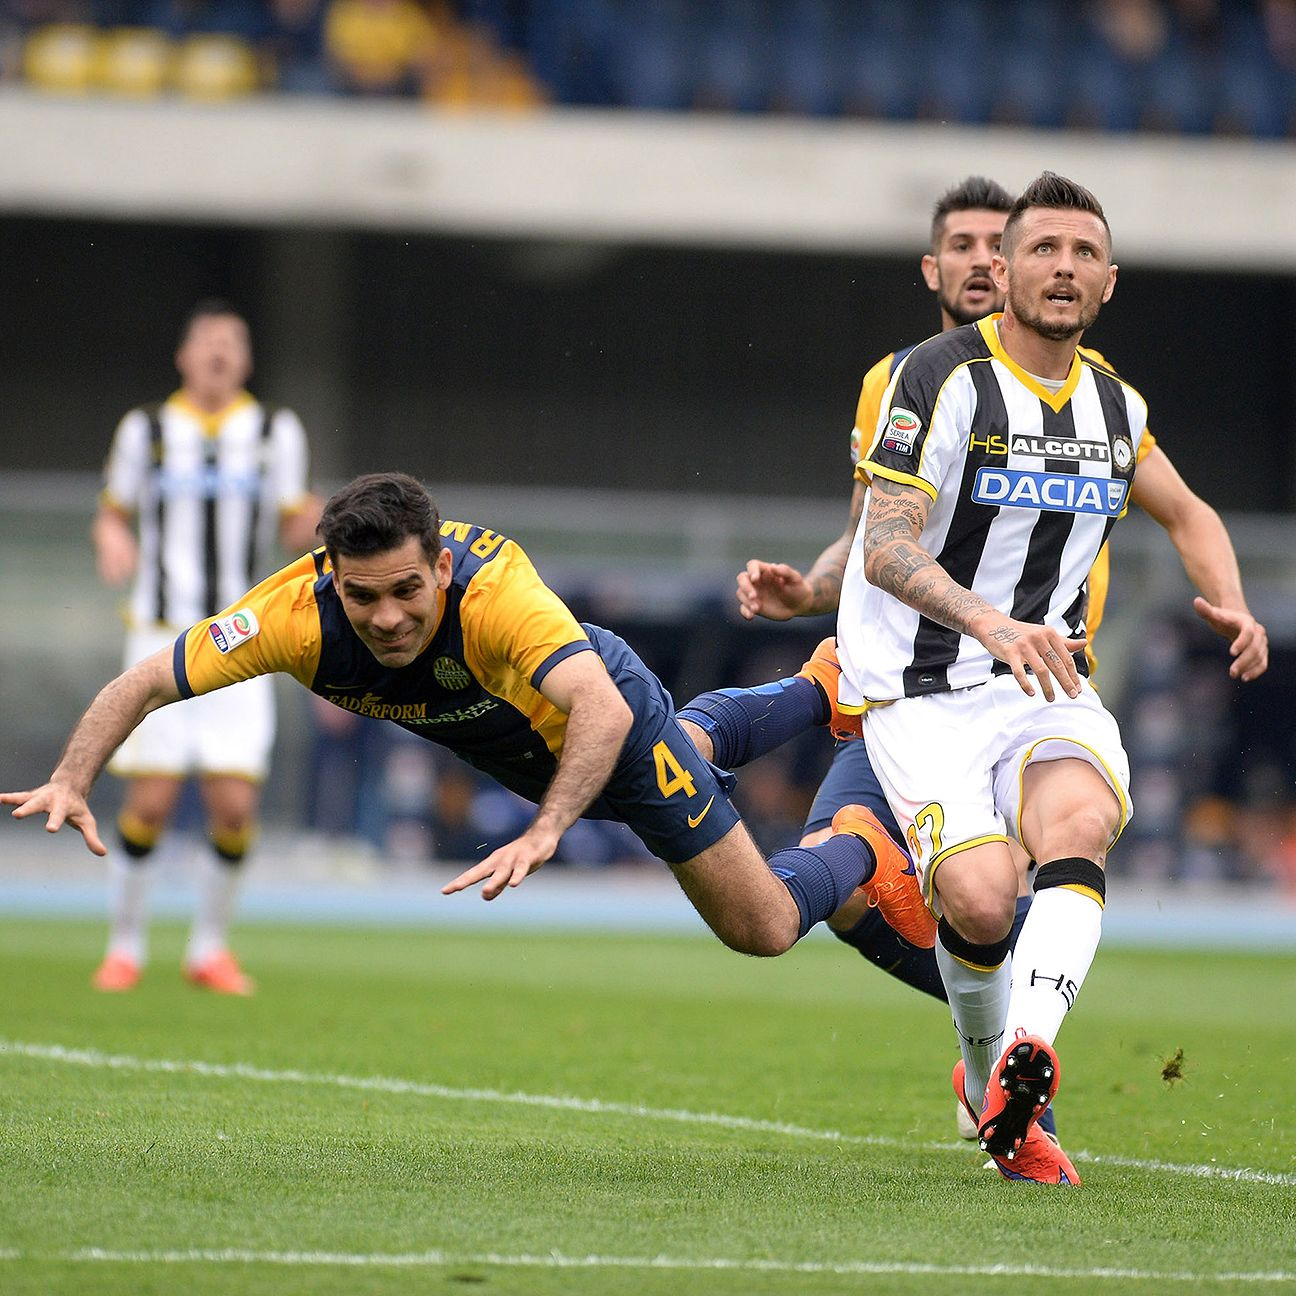 Rafa Marquez, left, endured a tough outing versus Udinese which ended with a late sending off for dissent.